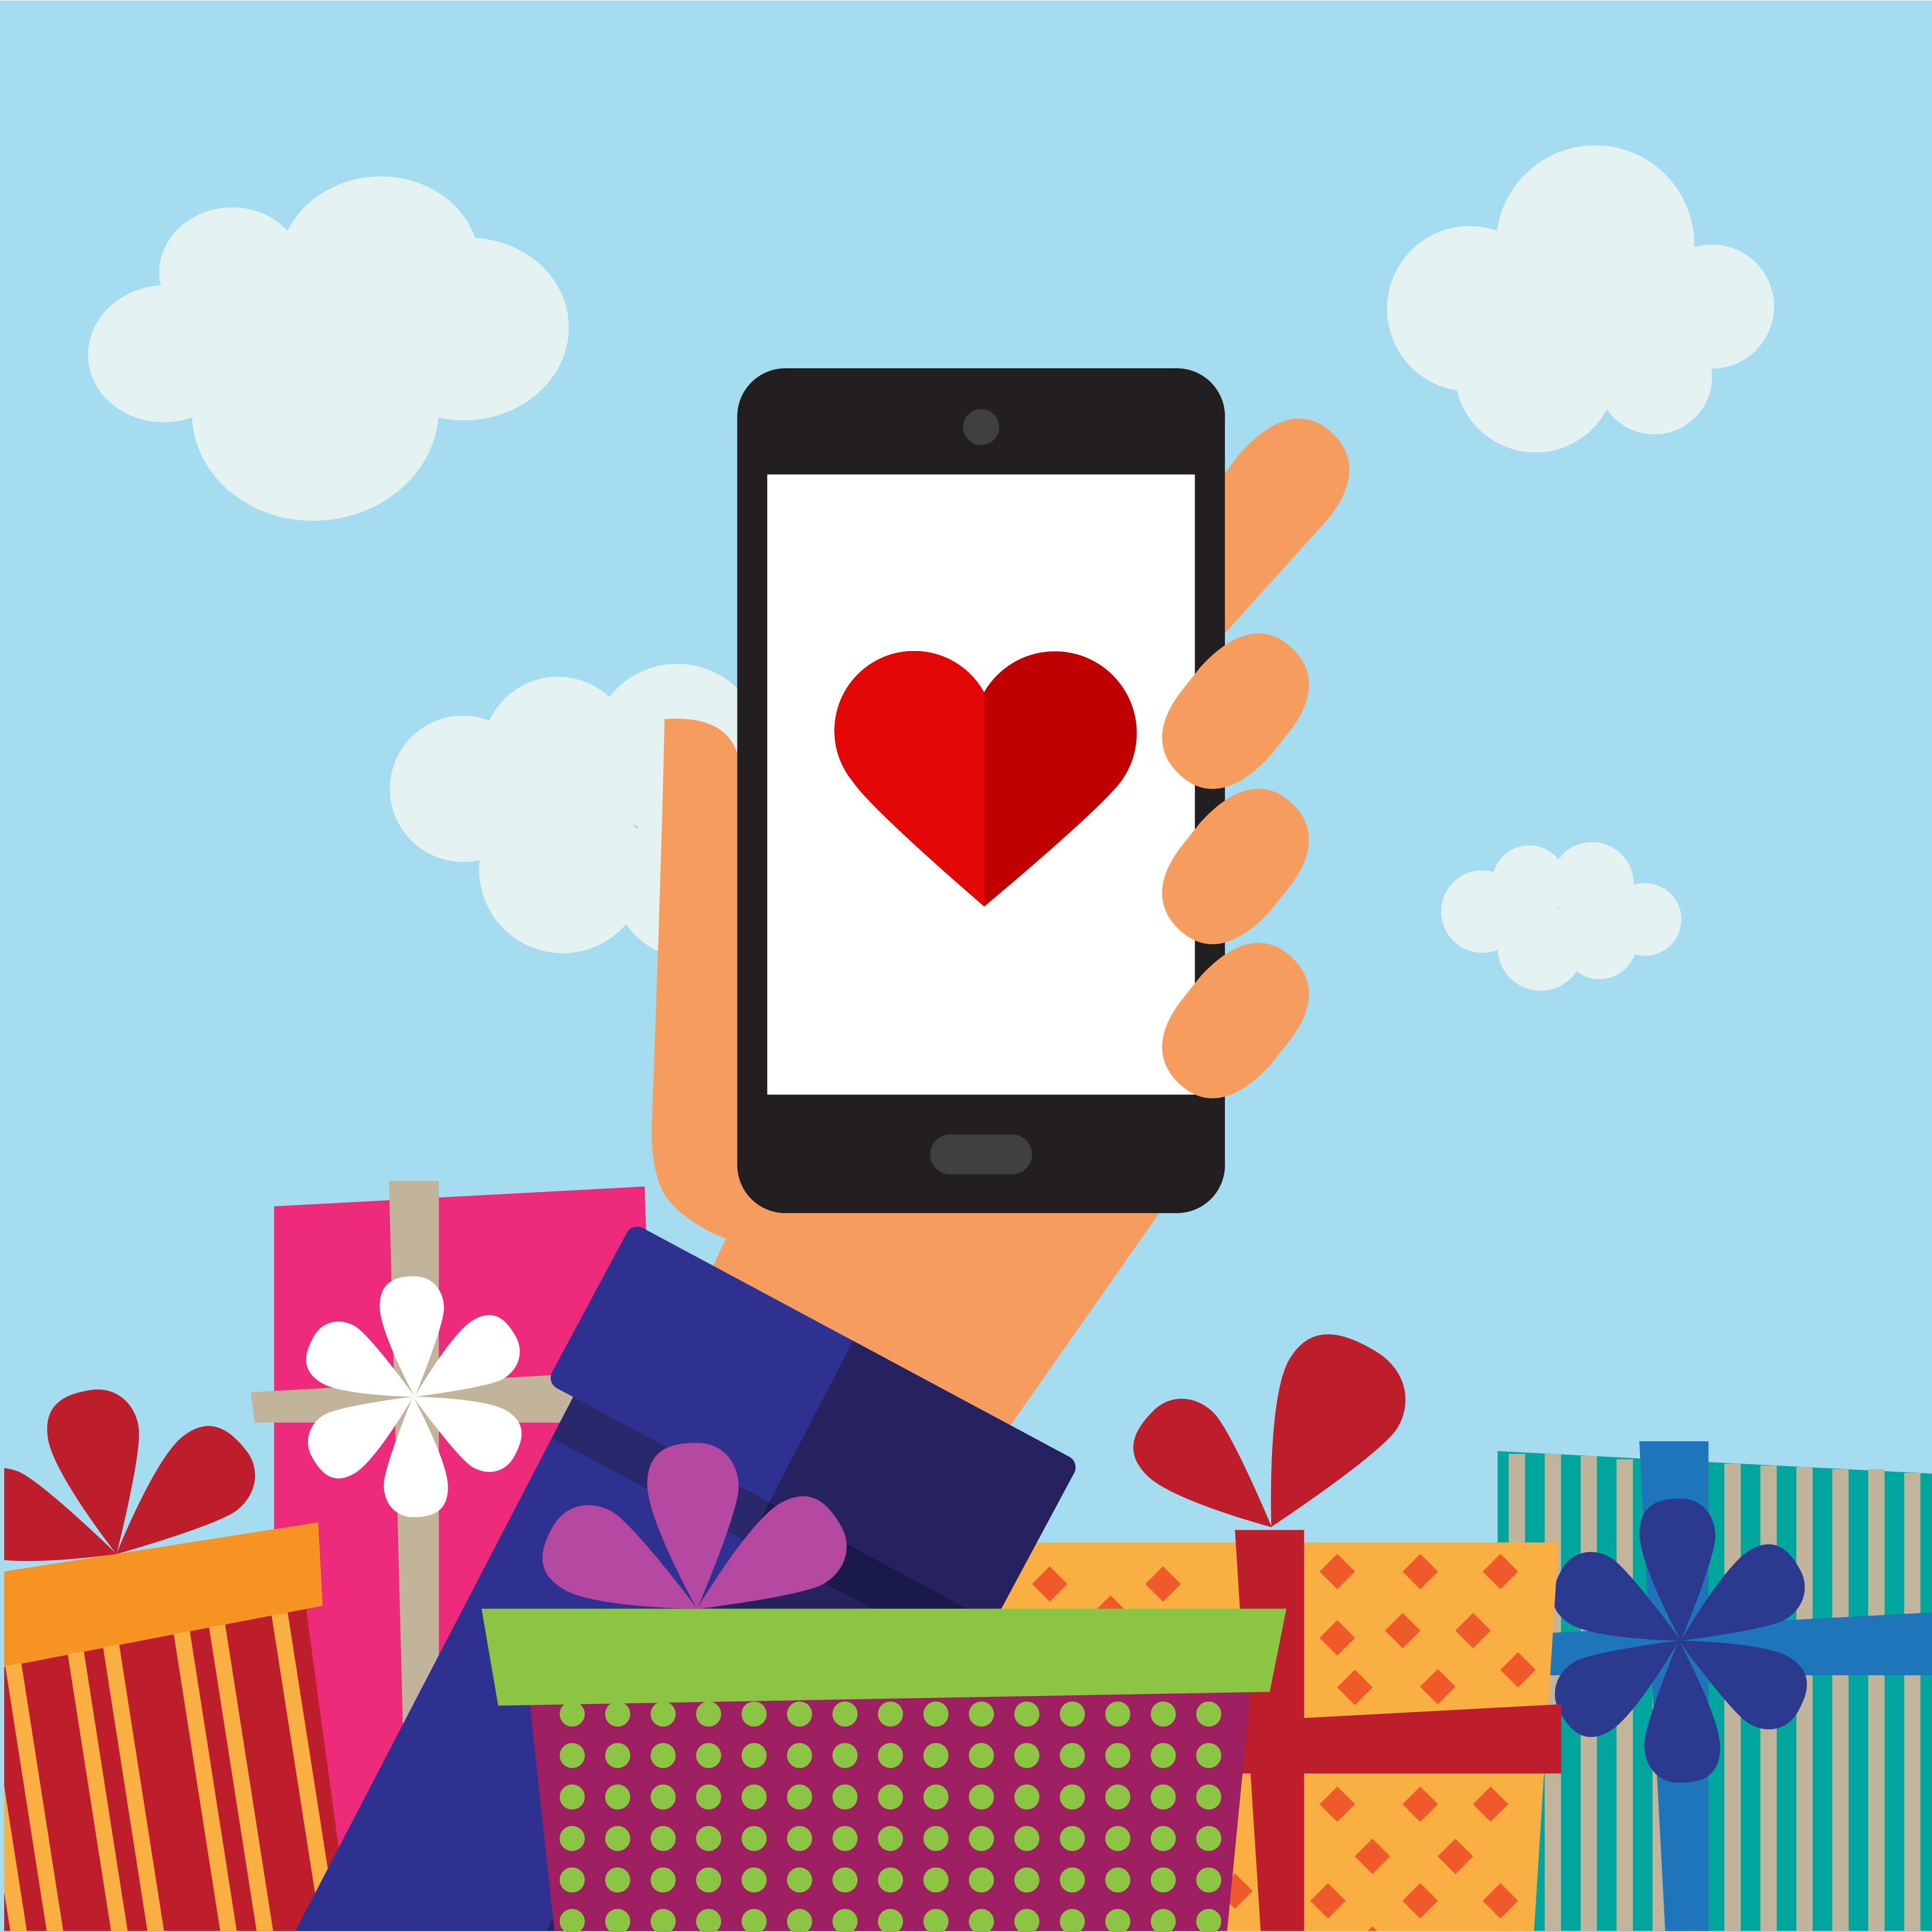 70 Per Cent of Valentine's Day Retail Searches Made on Mobile